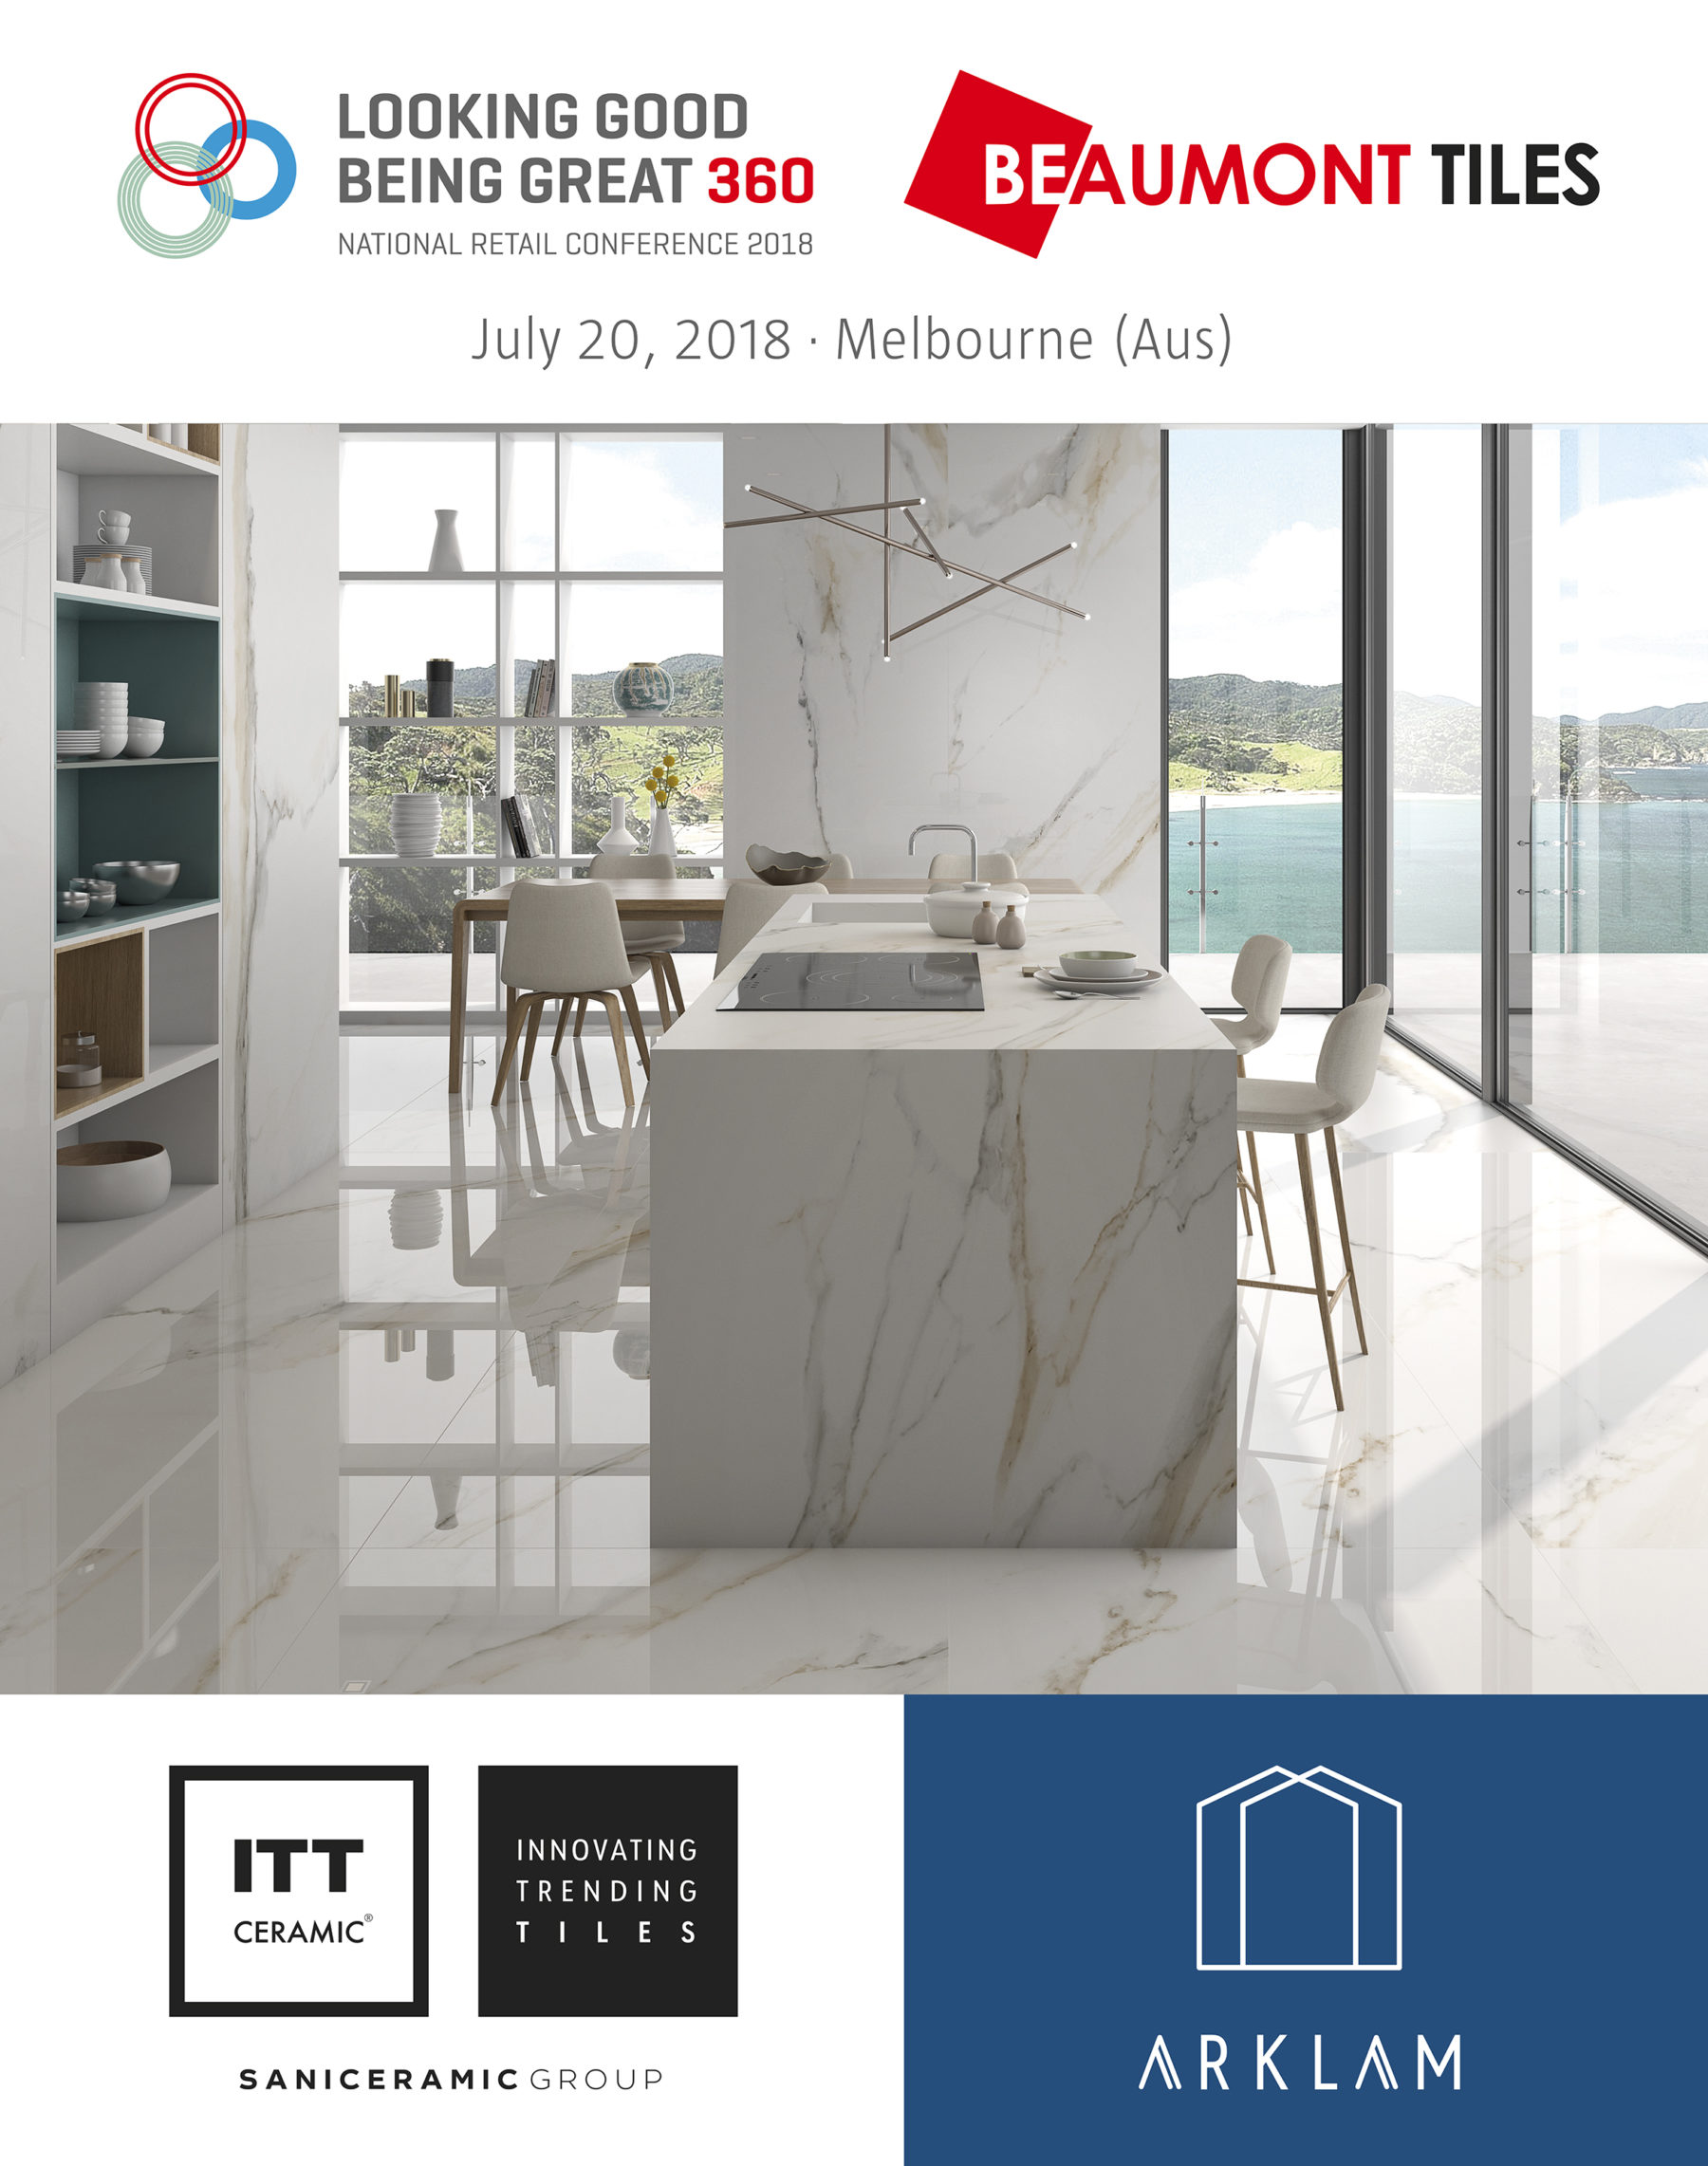 Itt Ceramic Attends The Beaumont Tiles National Retail Conference 2018 In Australia